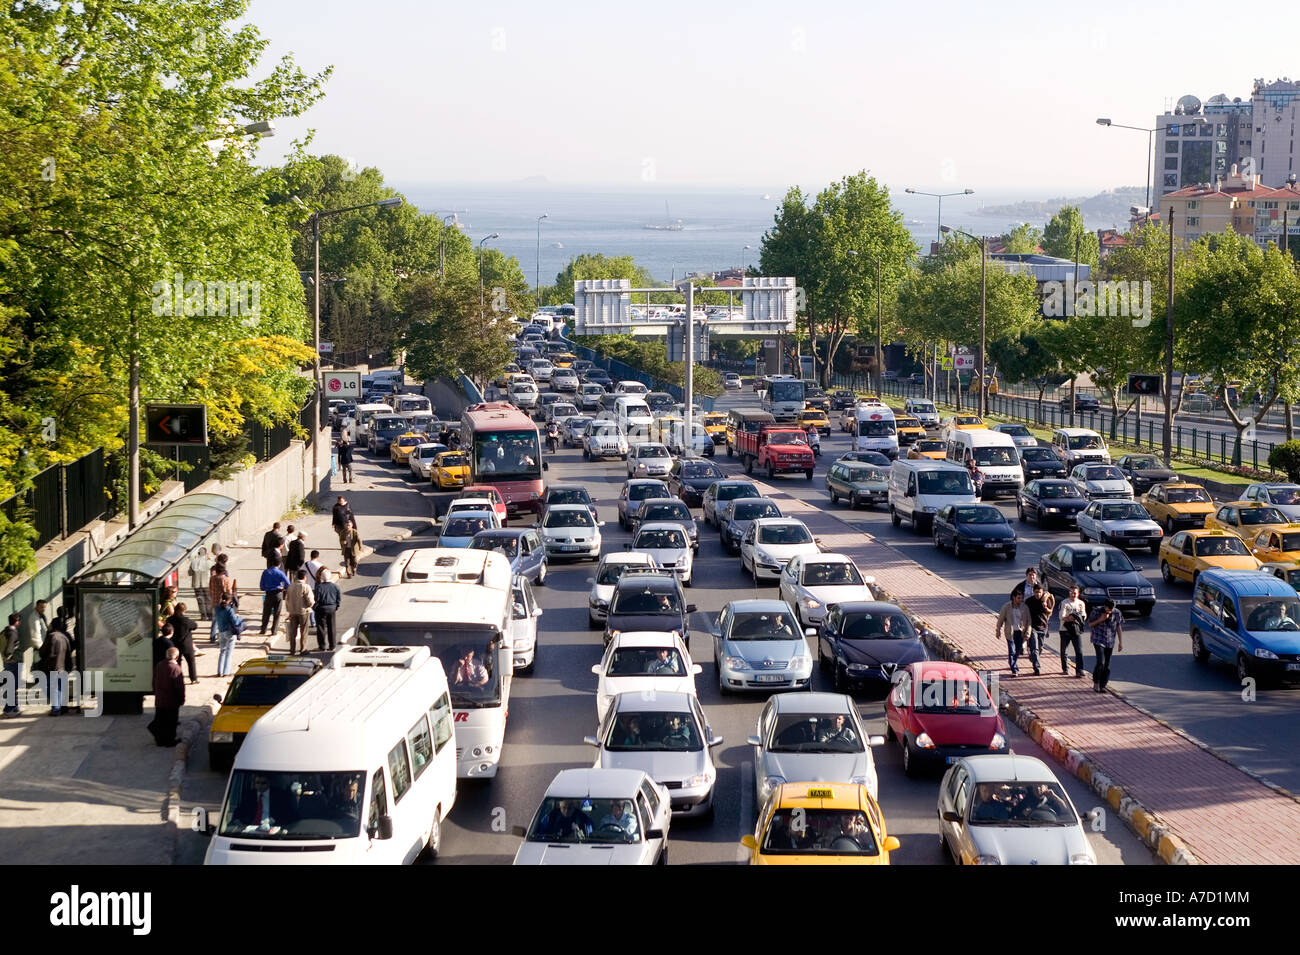 Heavy traffic on Istanbul city road at Ortakoy - Stock Image